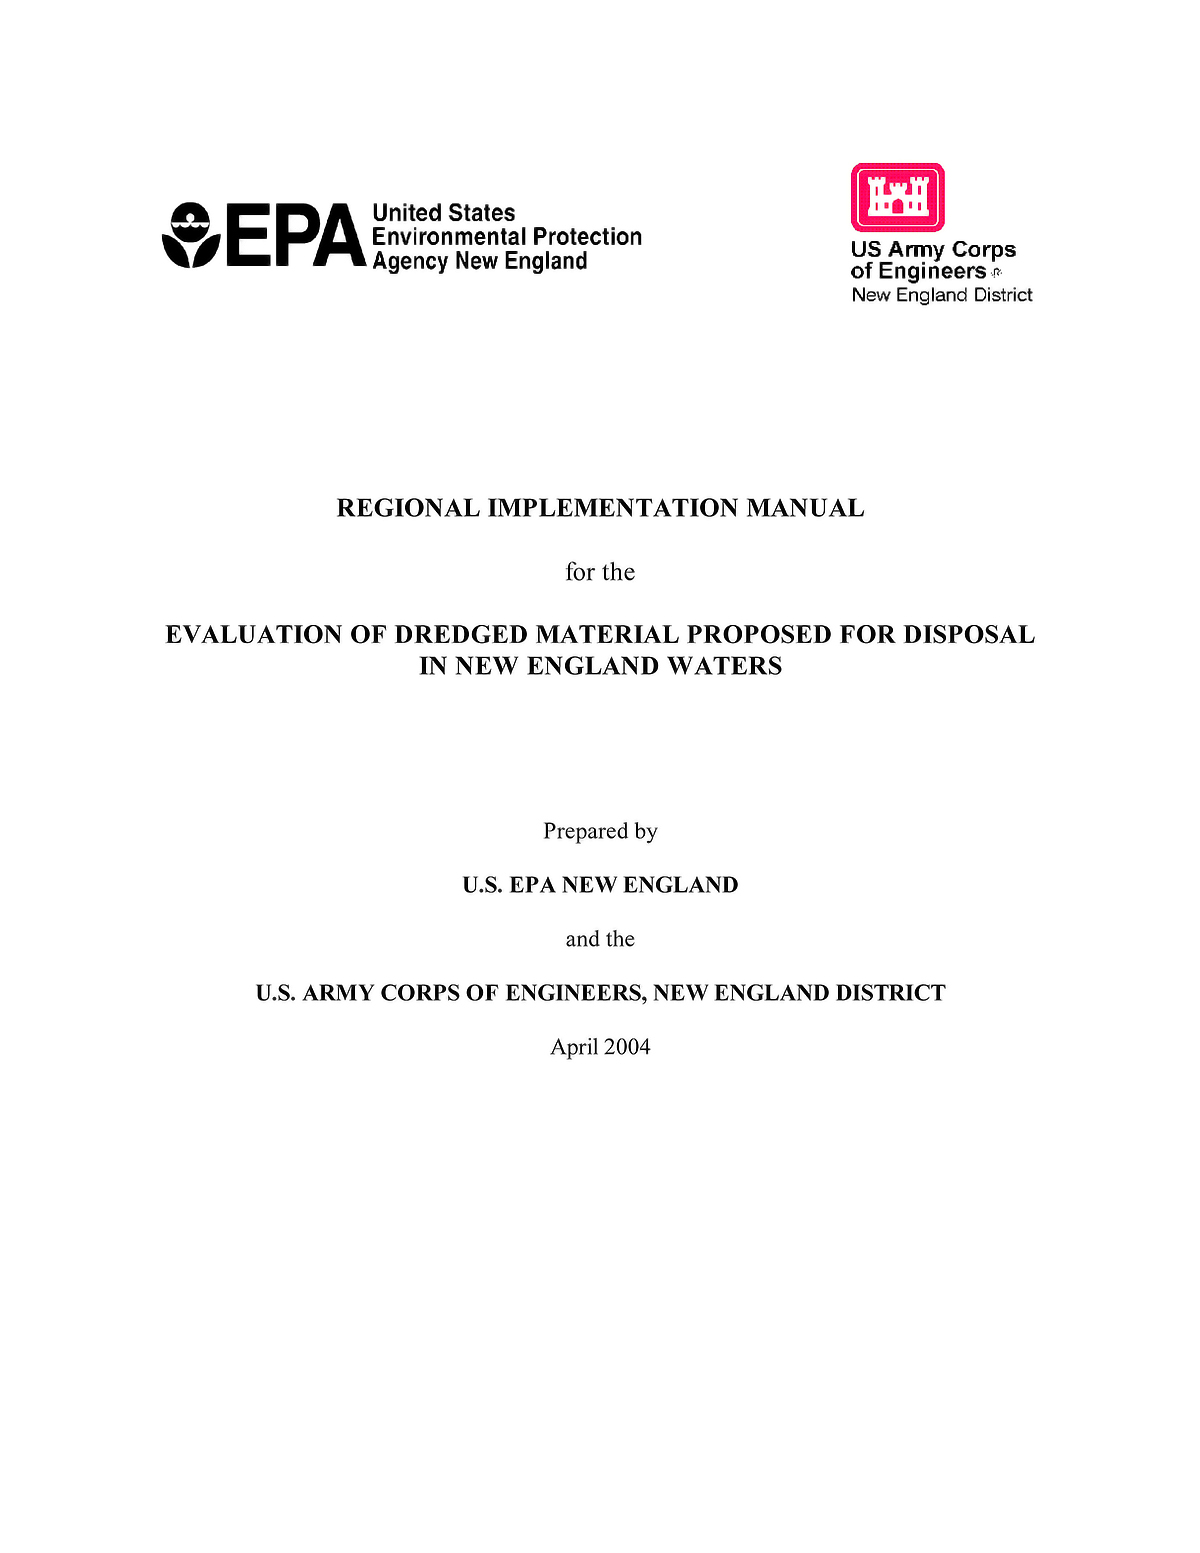 Regional Implementation Manual